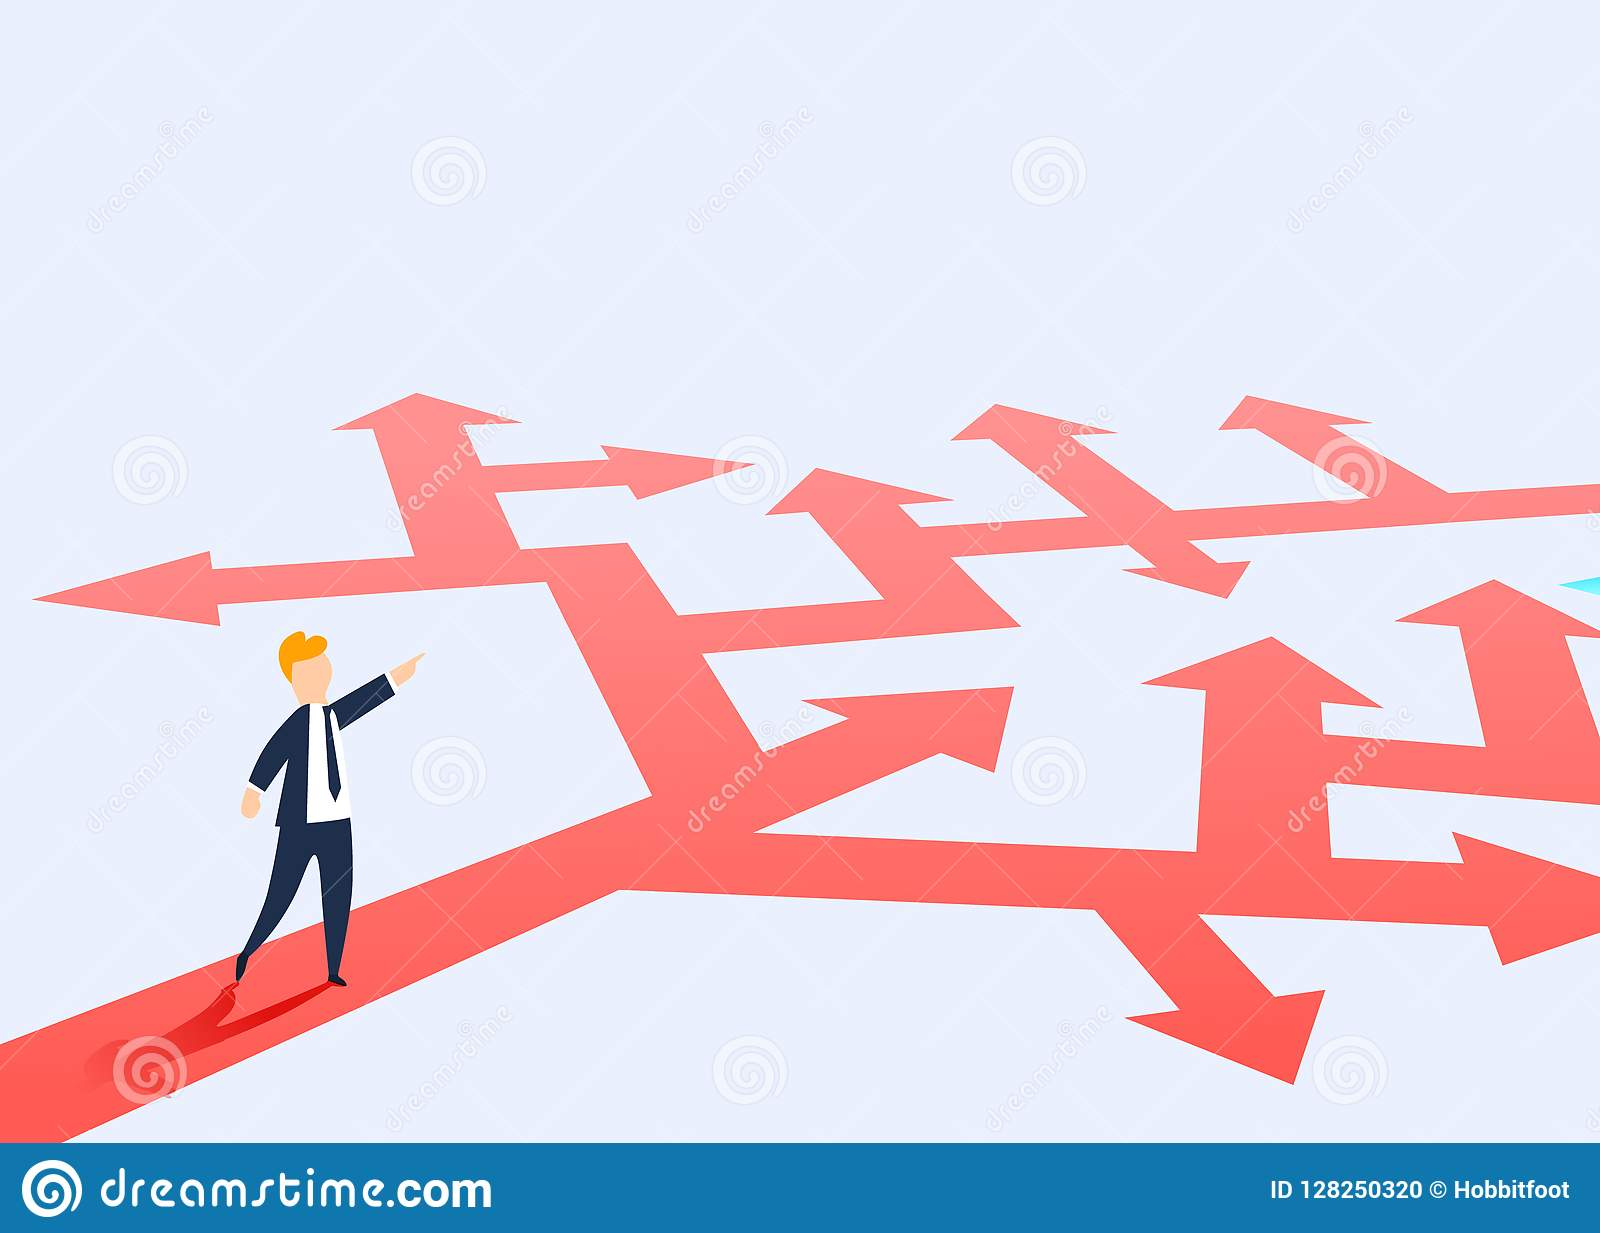 The concept of choosing the way of business and a businessman showing the direction. Problem solving, way to success.